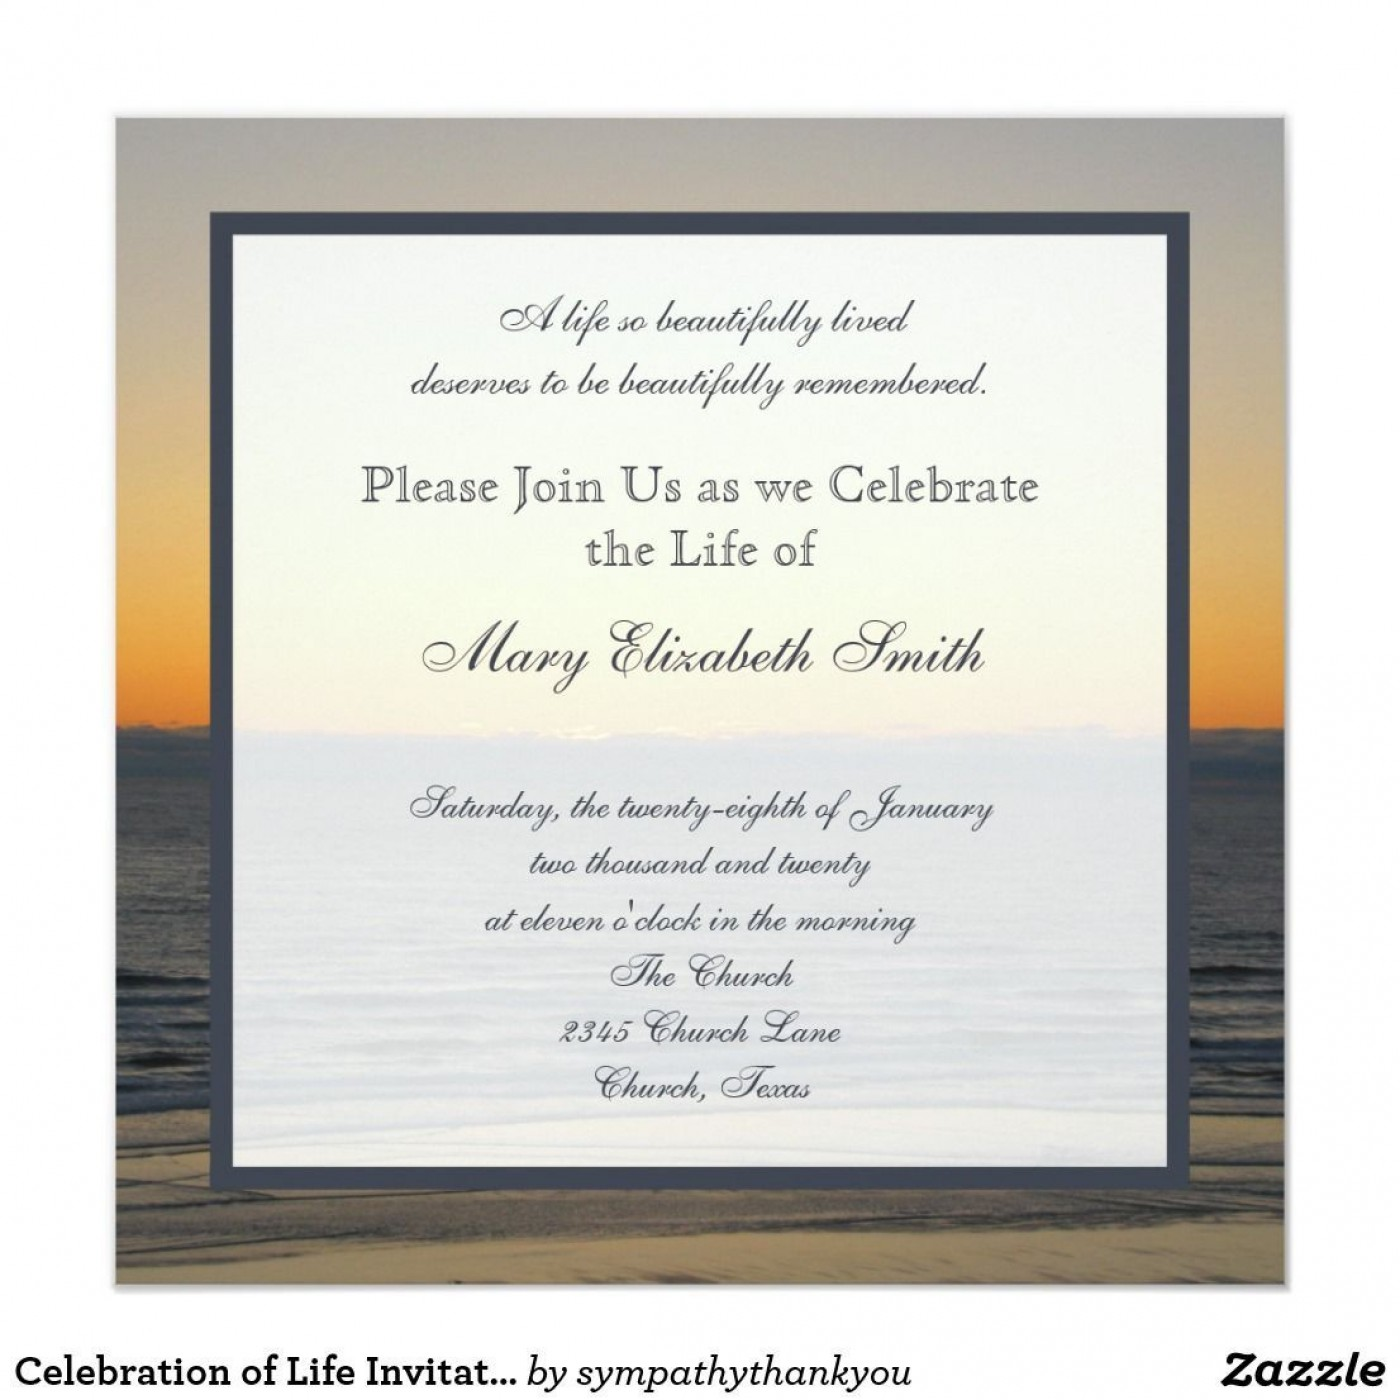 003 Simple Celebration Of Life Invitation Template Free High Def 1400